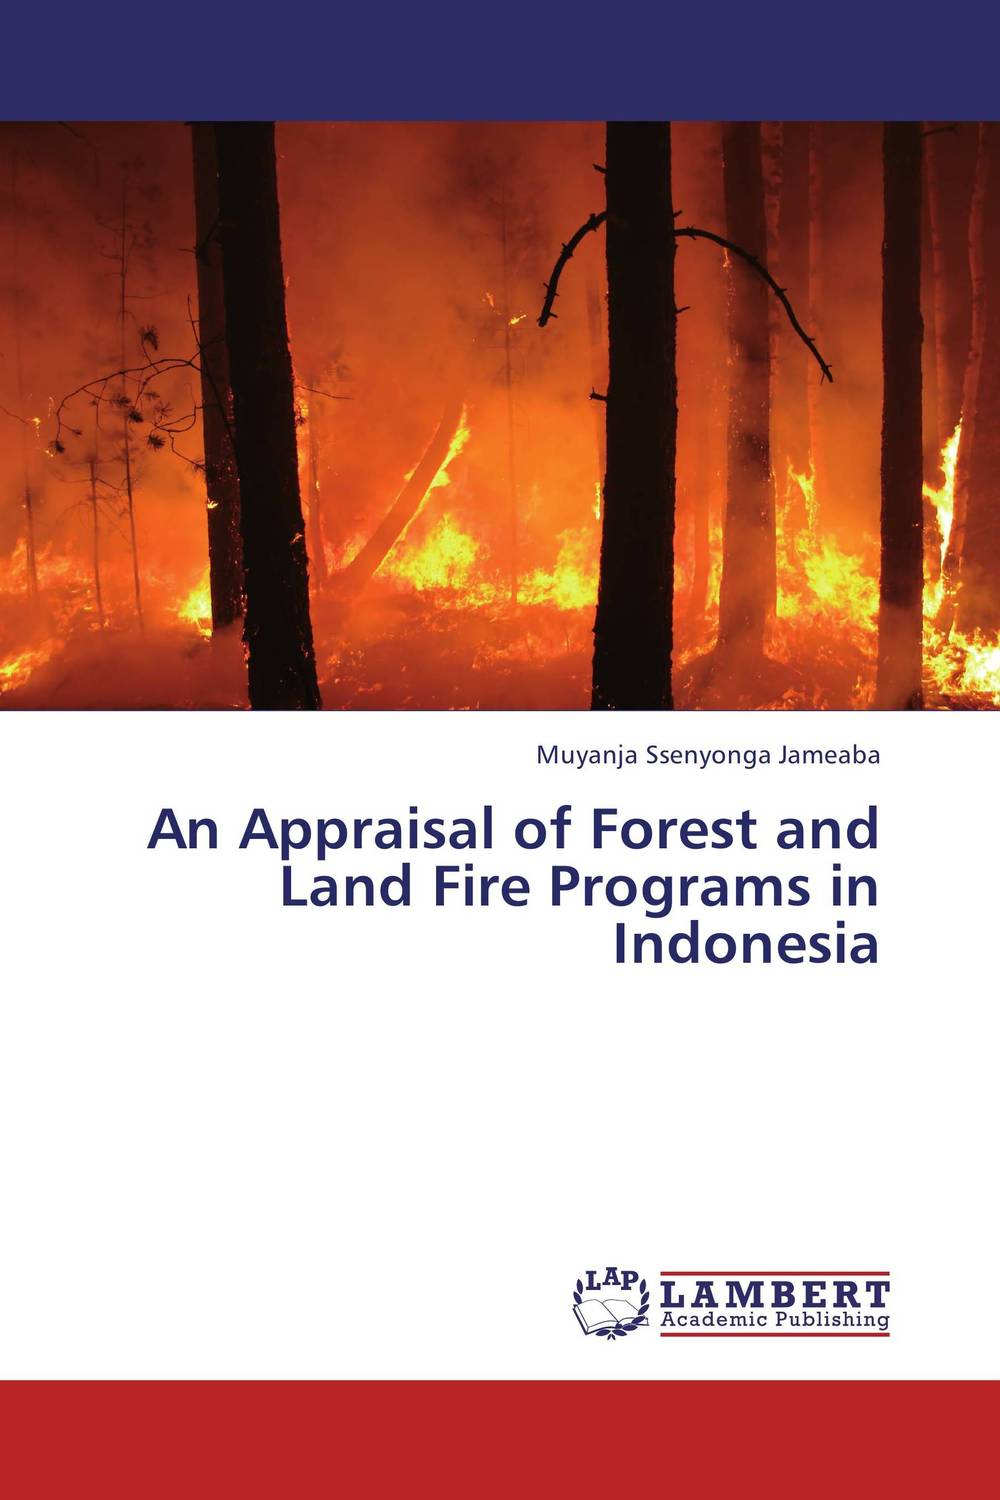 An Appraisal of Forest and Land Fire Programs in Indonesia